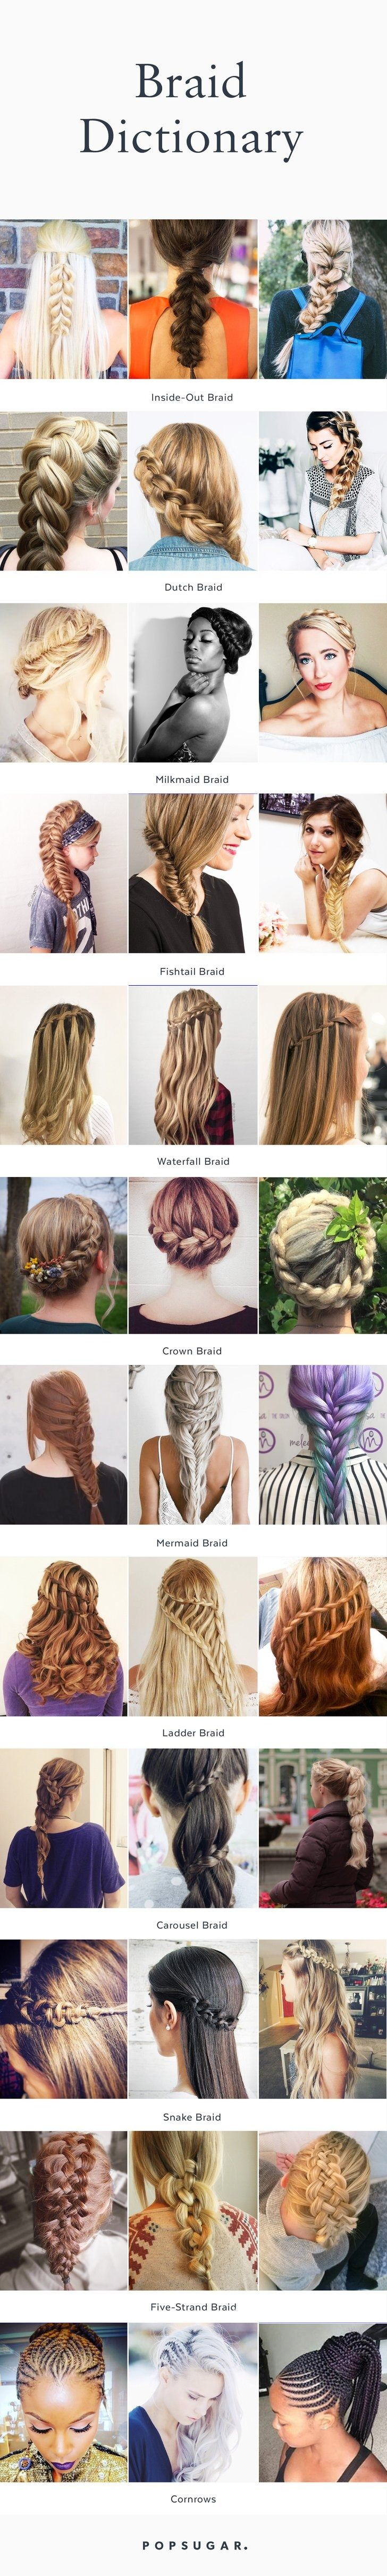 the guide for the perfect braid (or braids) this Summer.